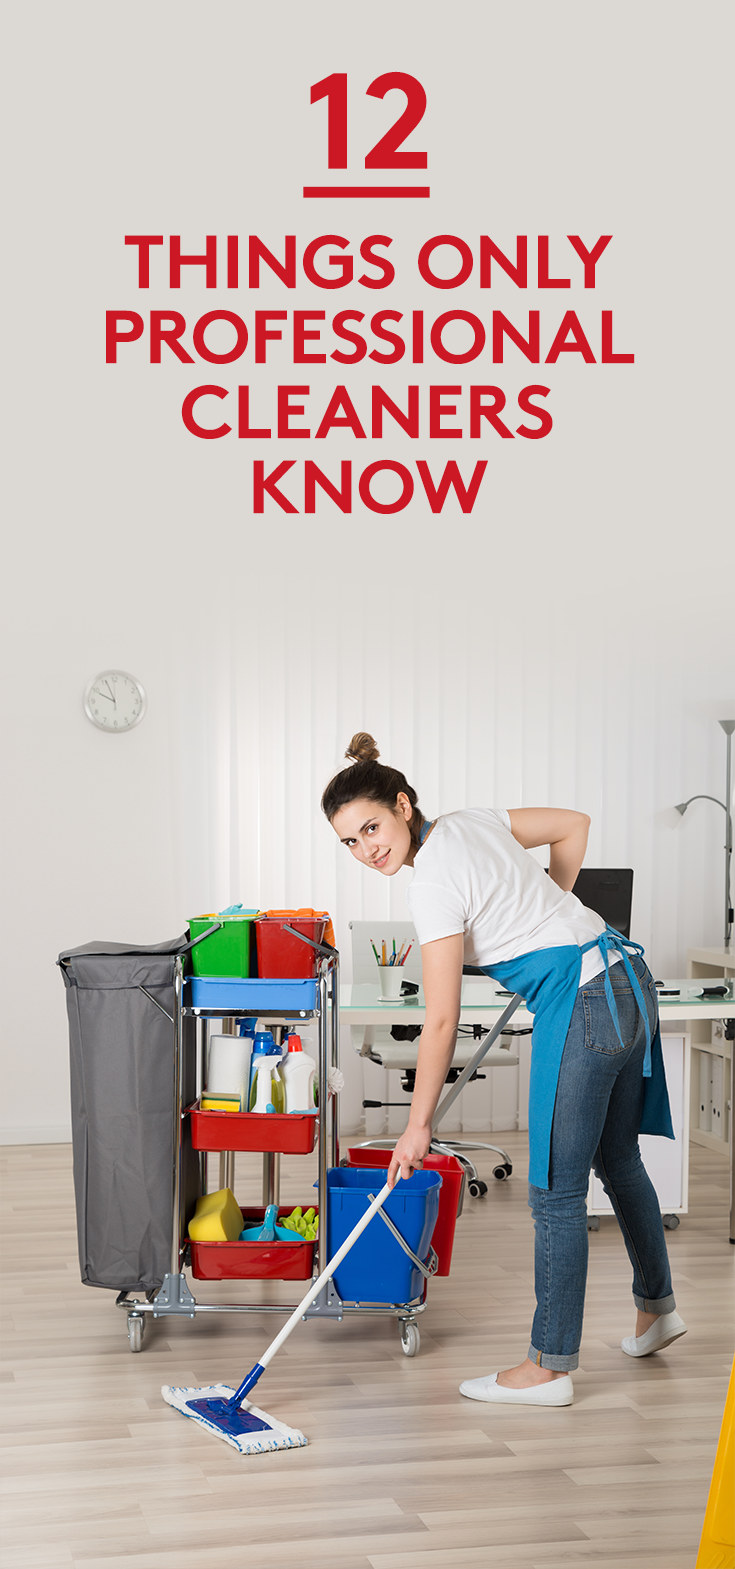 12 Things Only Professional Cleaners Know #cleaning